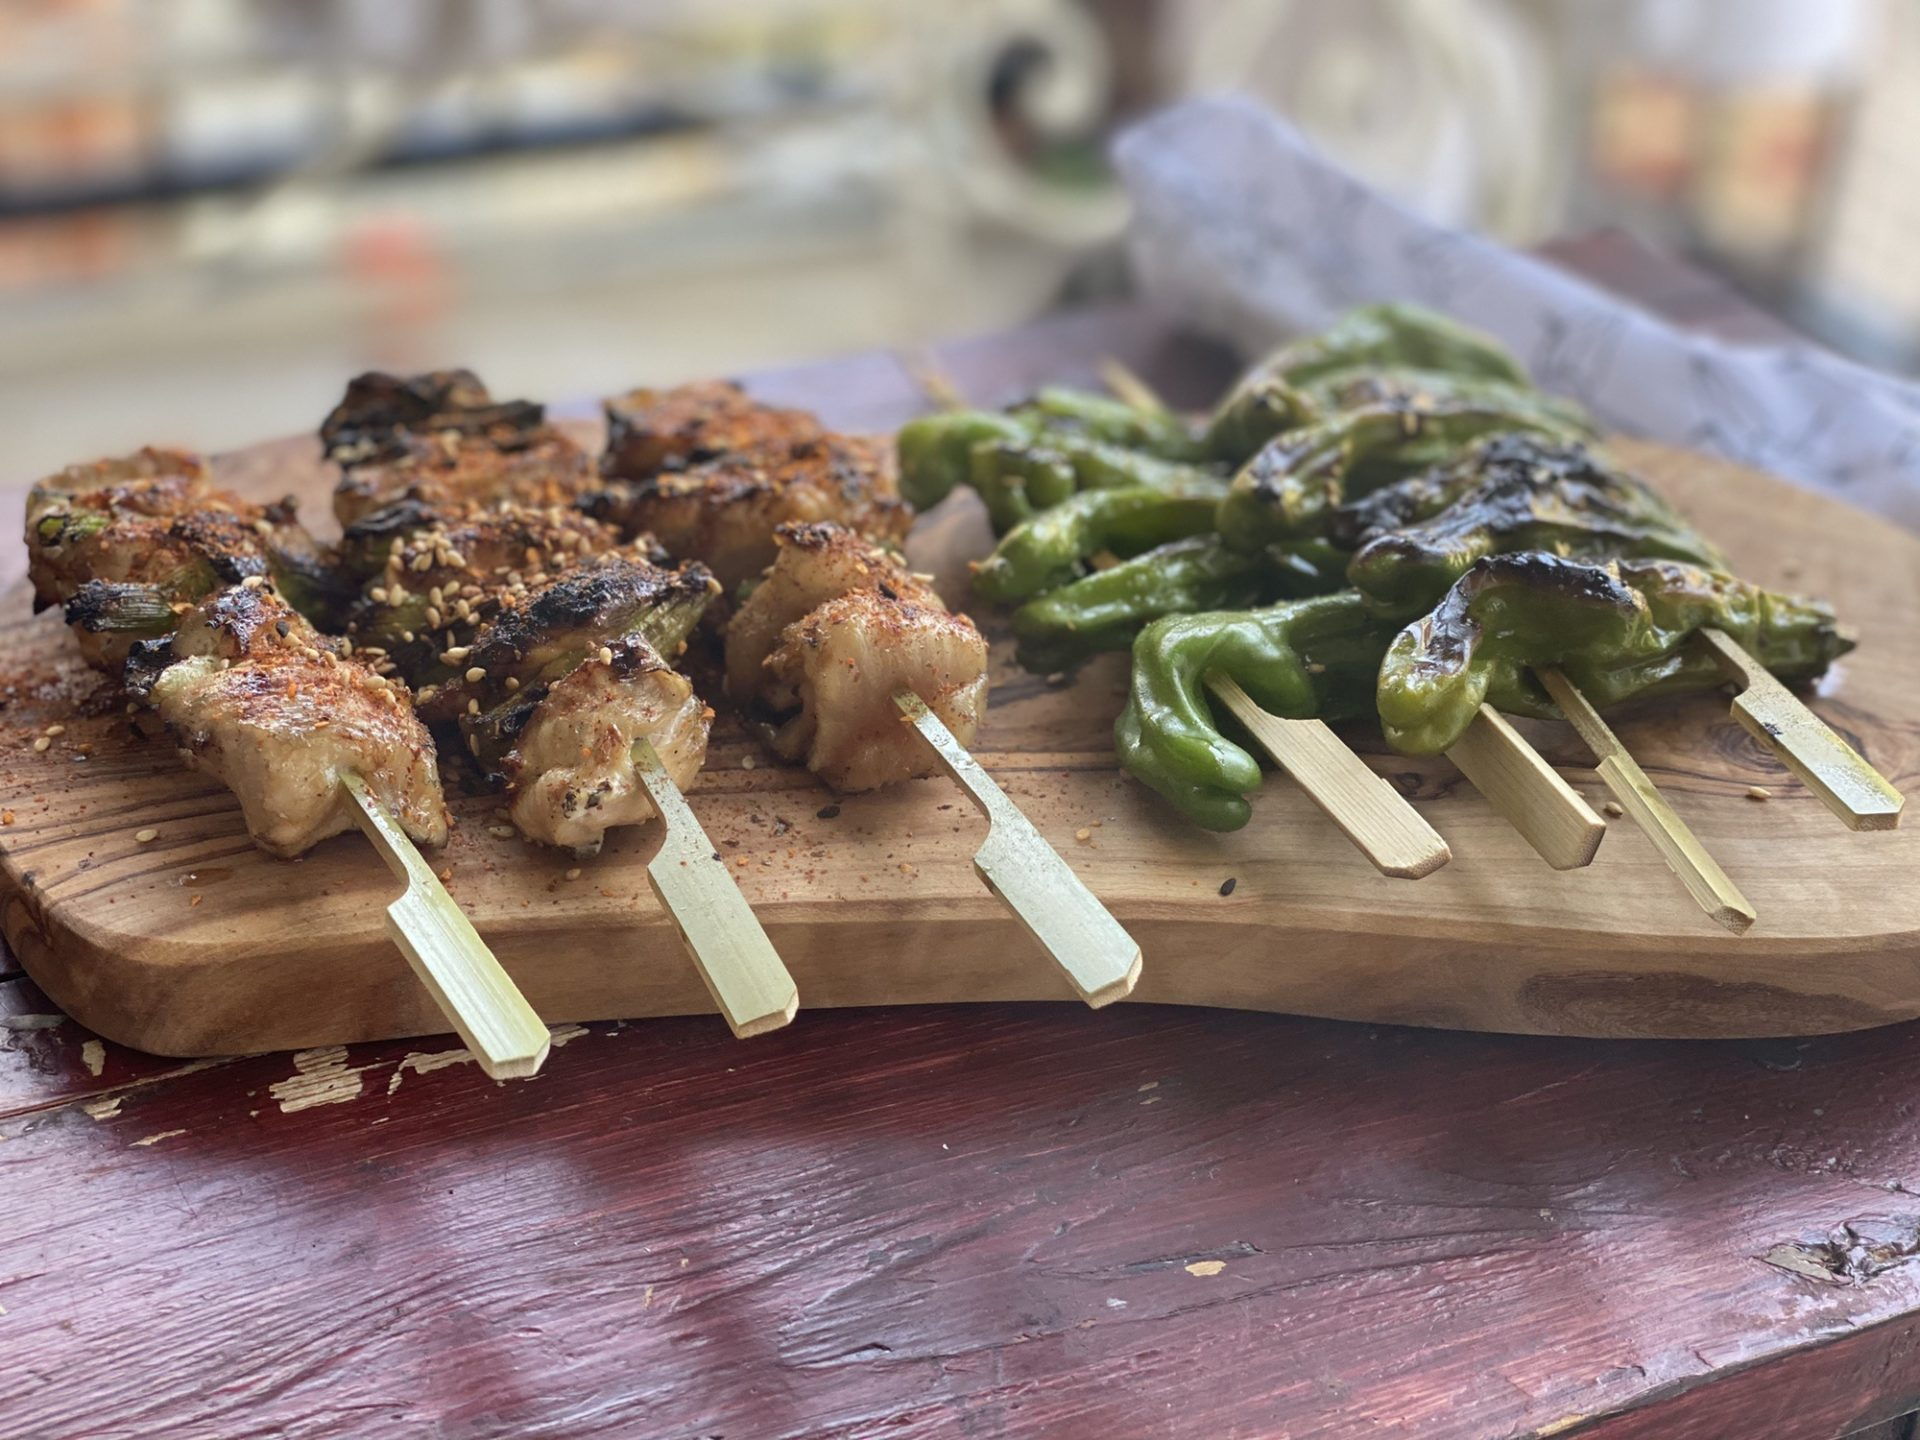 Yakitori Grill at Home for the Beginner 2